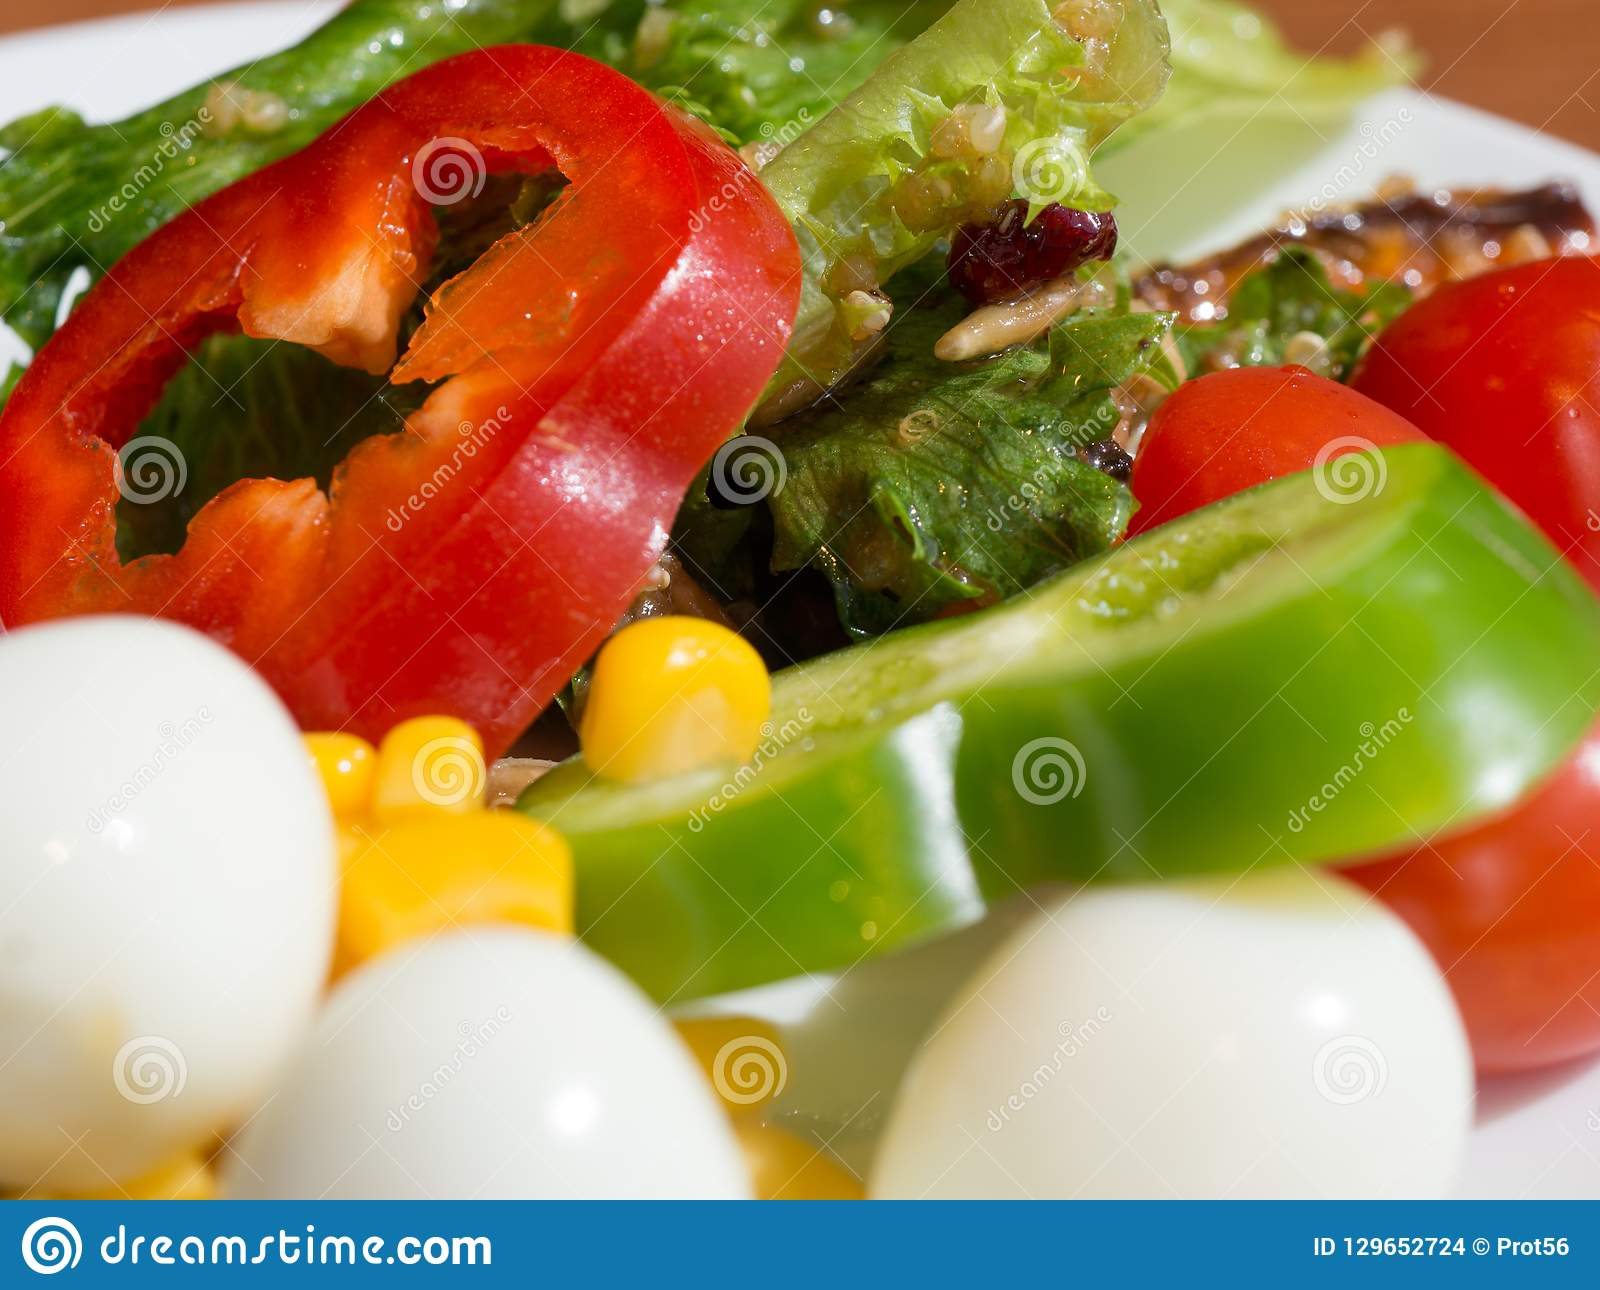 Close up of healthy fresh vegetable salad. colorful vegetable salad. Yellow corn, Green beans, Red tomatoes and Bell pepper, Quail